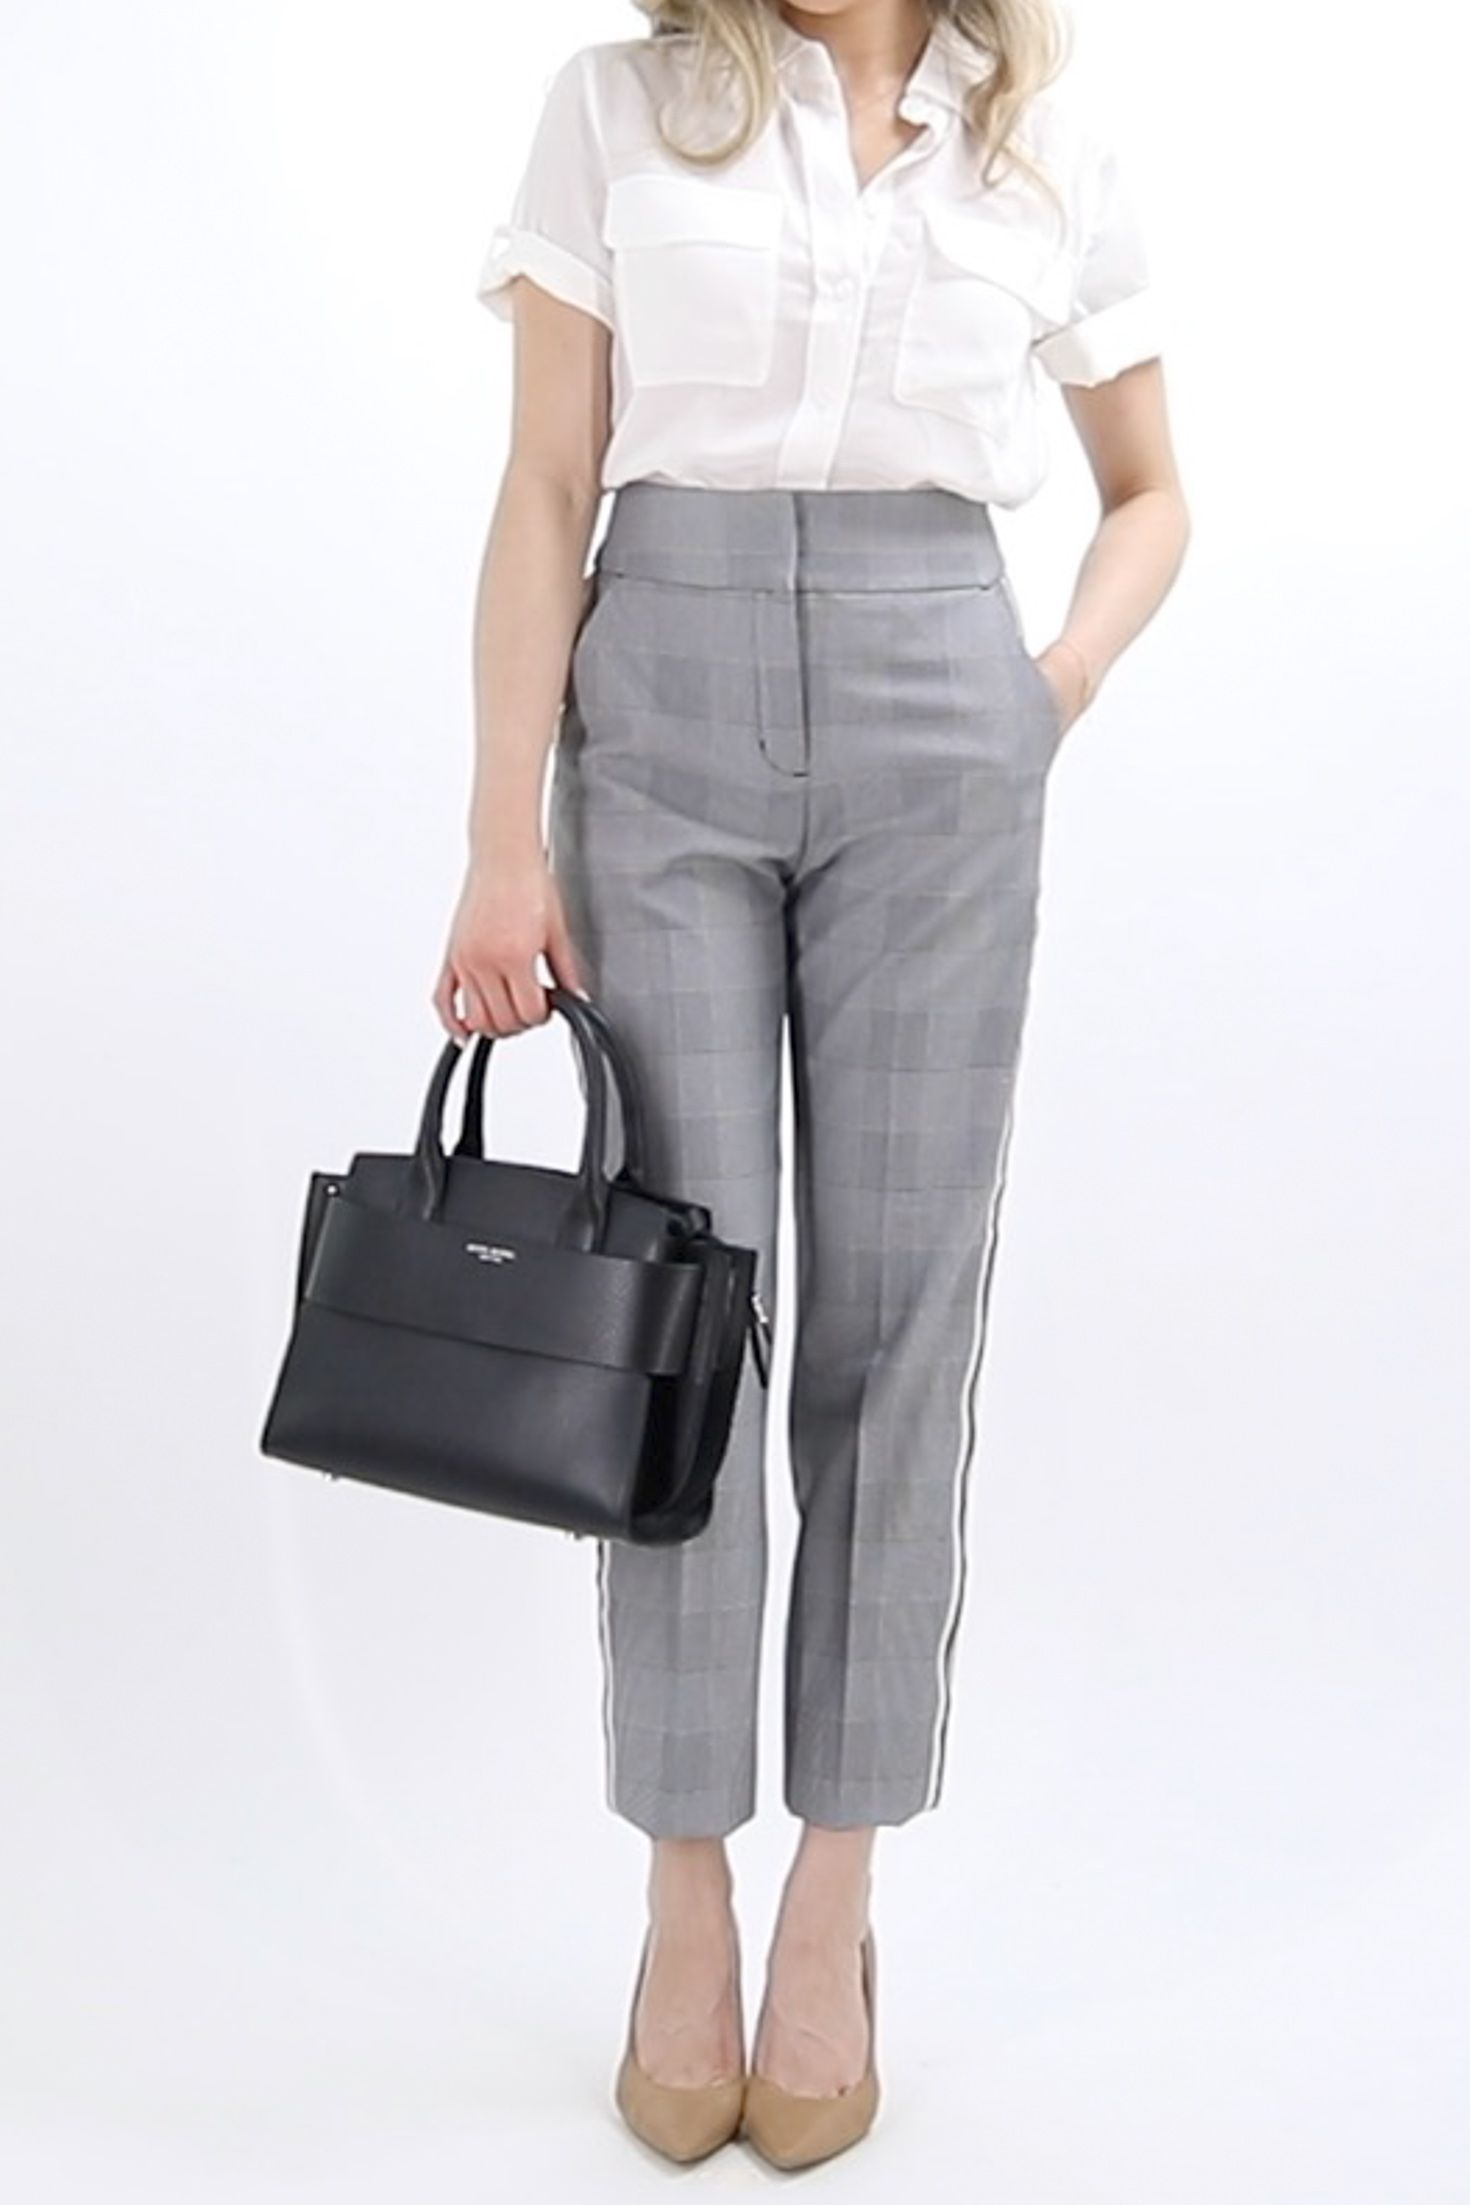 Spring To Summer Work Outfits Of The Week Lookbook For Women Work Outfit Summer Work Outfits Casual Work Outfits [ 2205 x 1470 Pixel ]